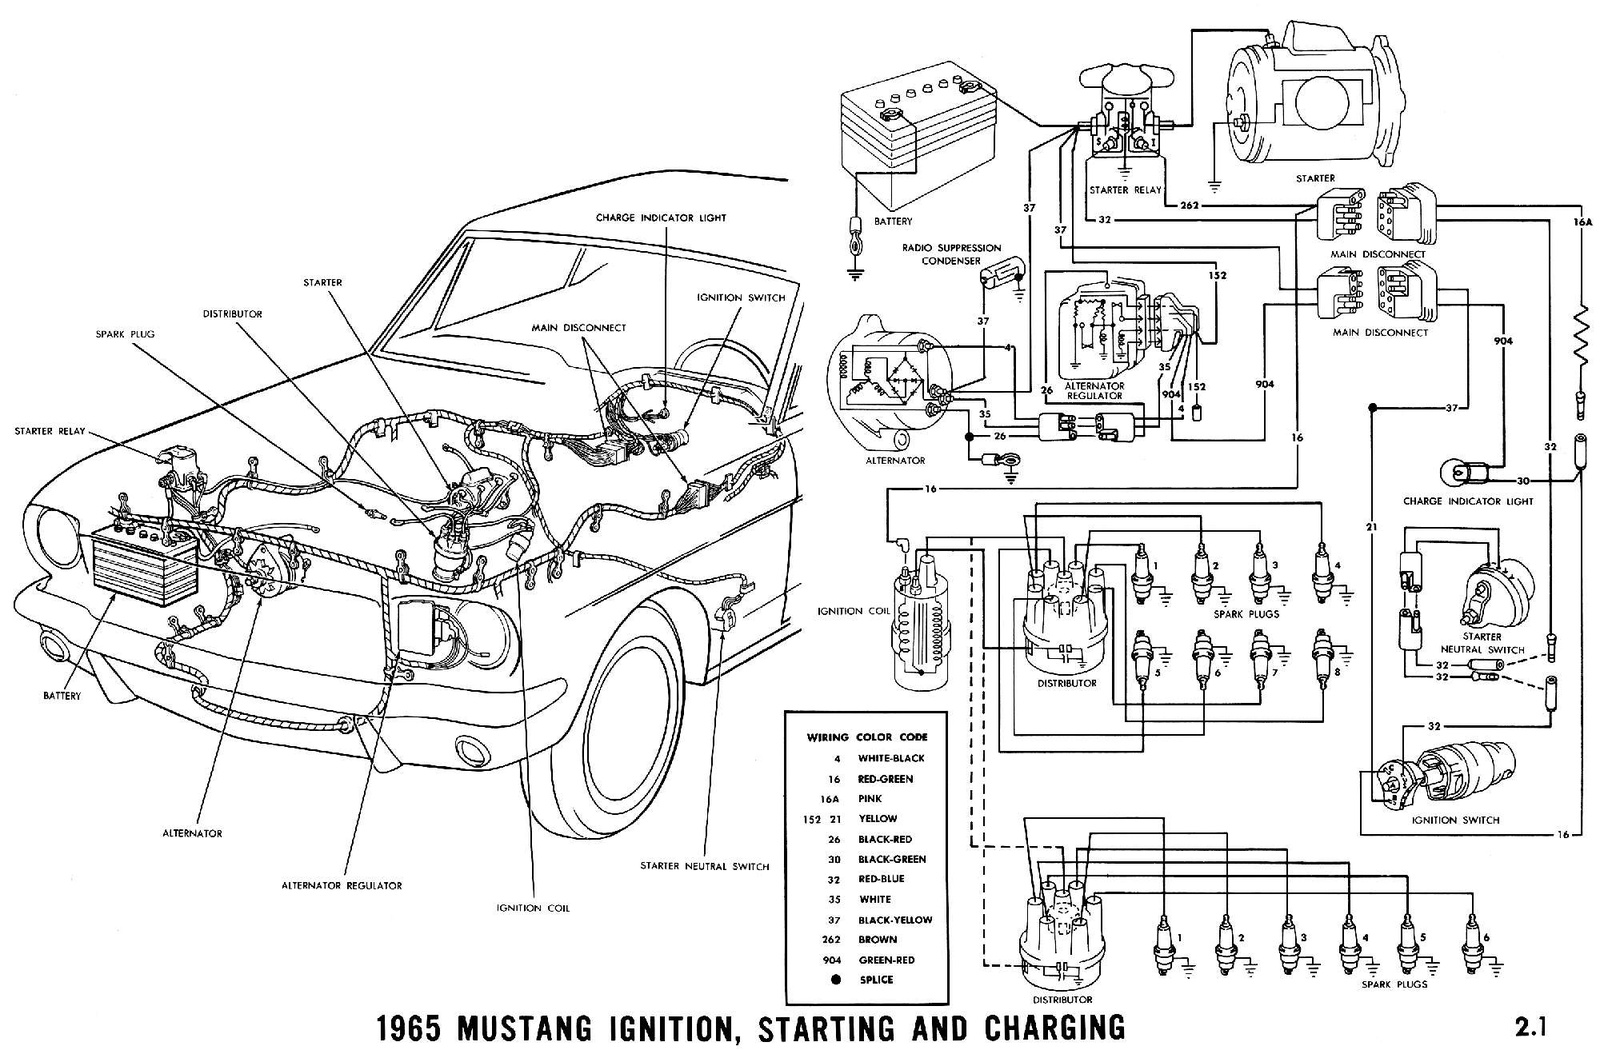 ford mustang questions how to install electric choke wire on rh cargurus com 65 mustang engine wiring diagram 65 mustang wiring diagram manual